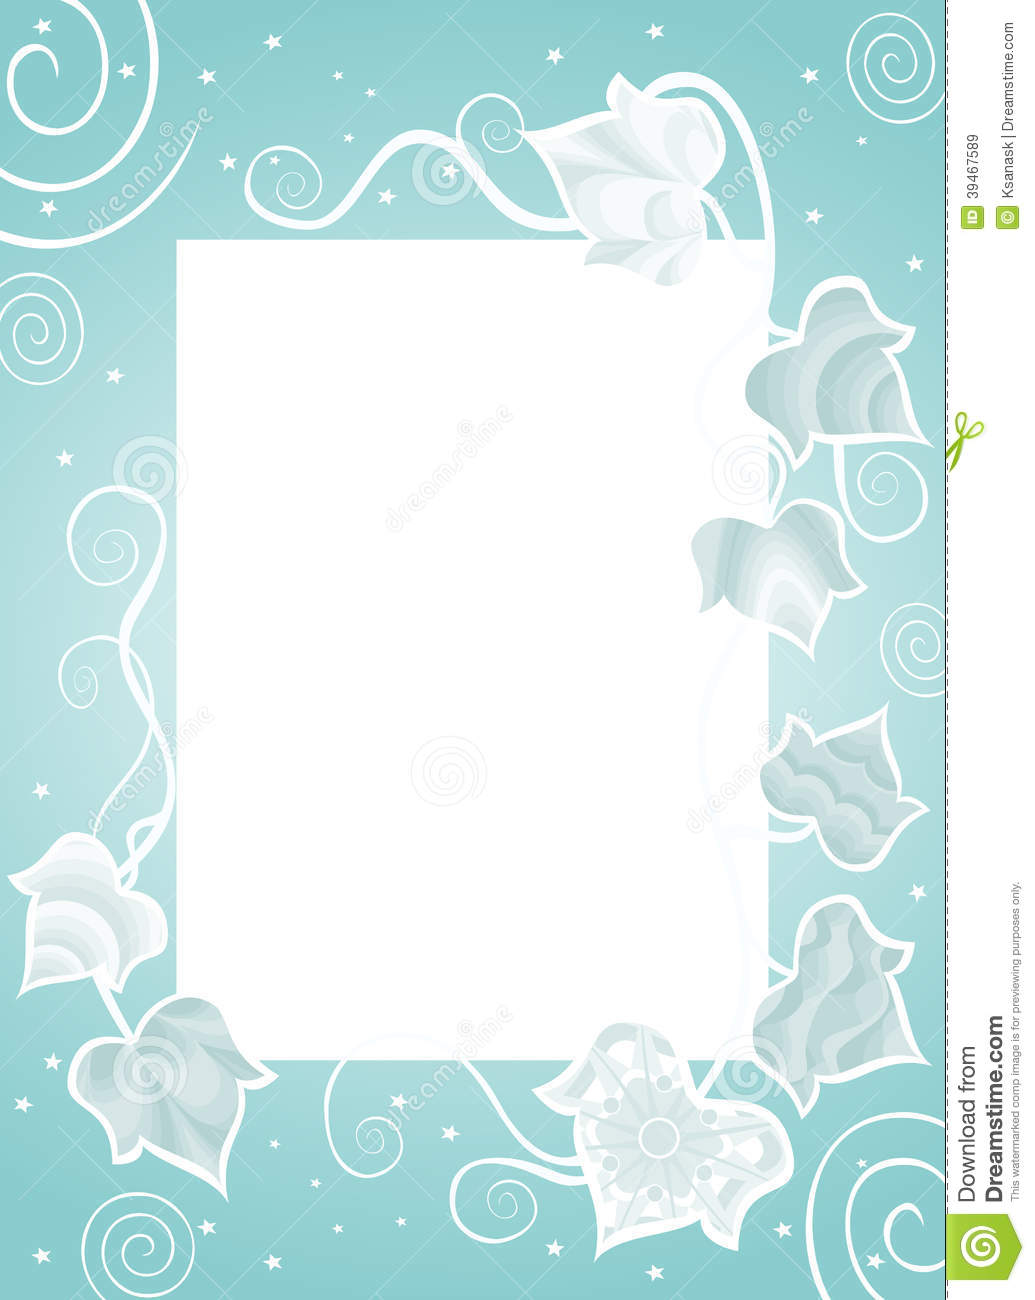 Frame With Fancy Ivy Stock Vector - Image: 39467589 Fancy Color Border